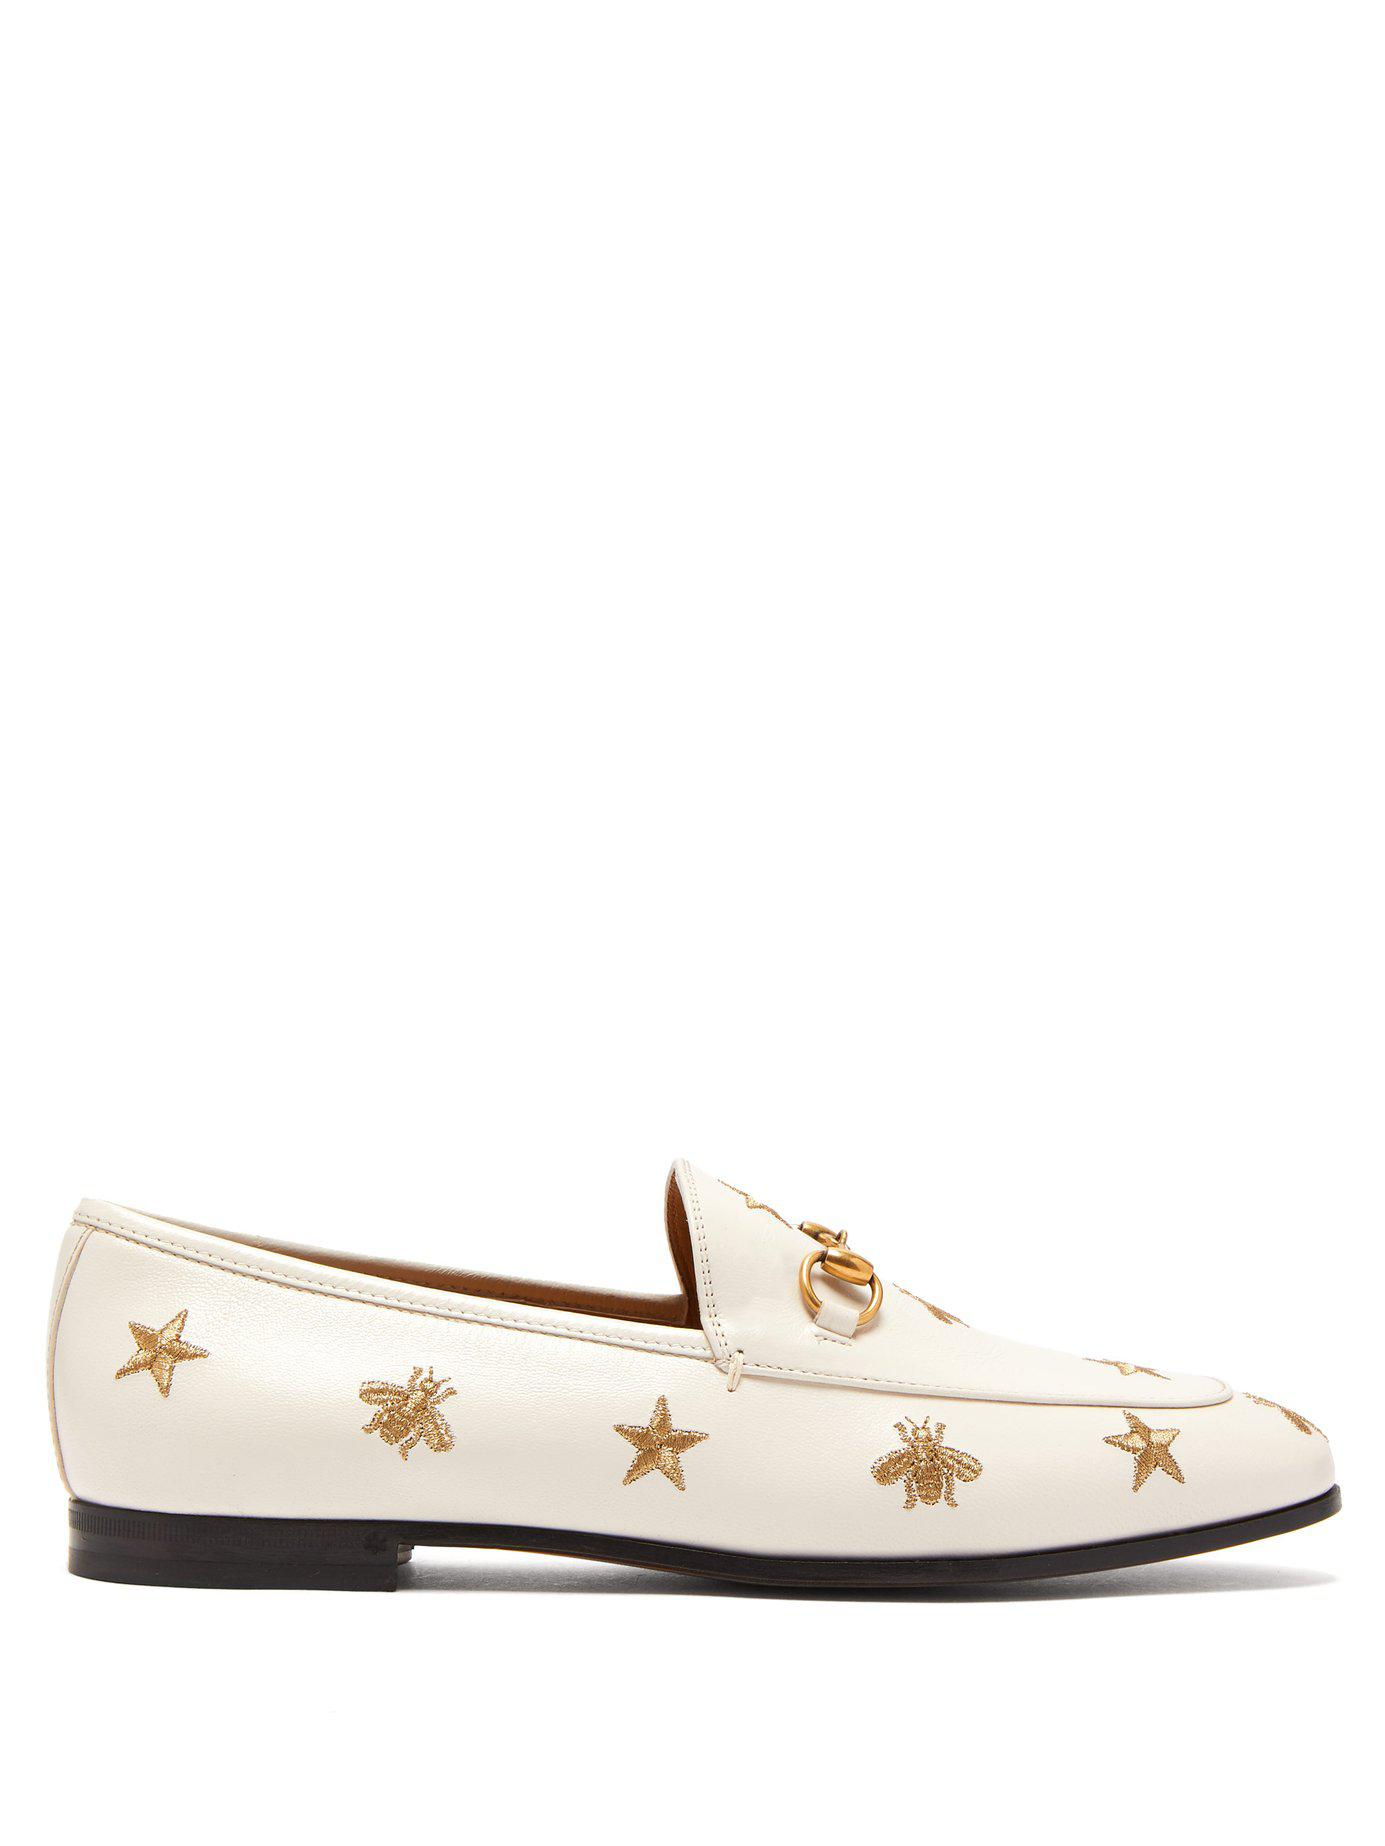 545e68b9ec9 Gucci. Women s New Jordaan Embroidered Leather Loafers